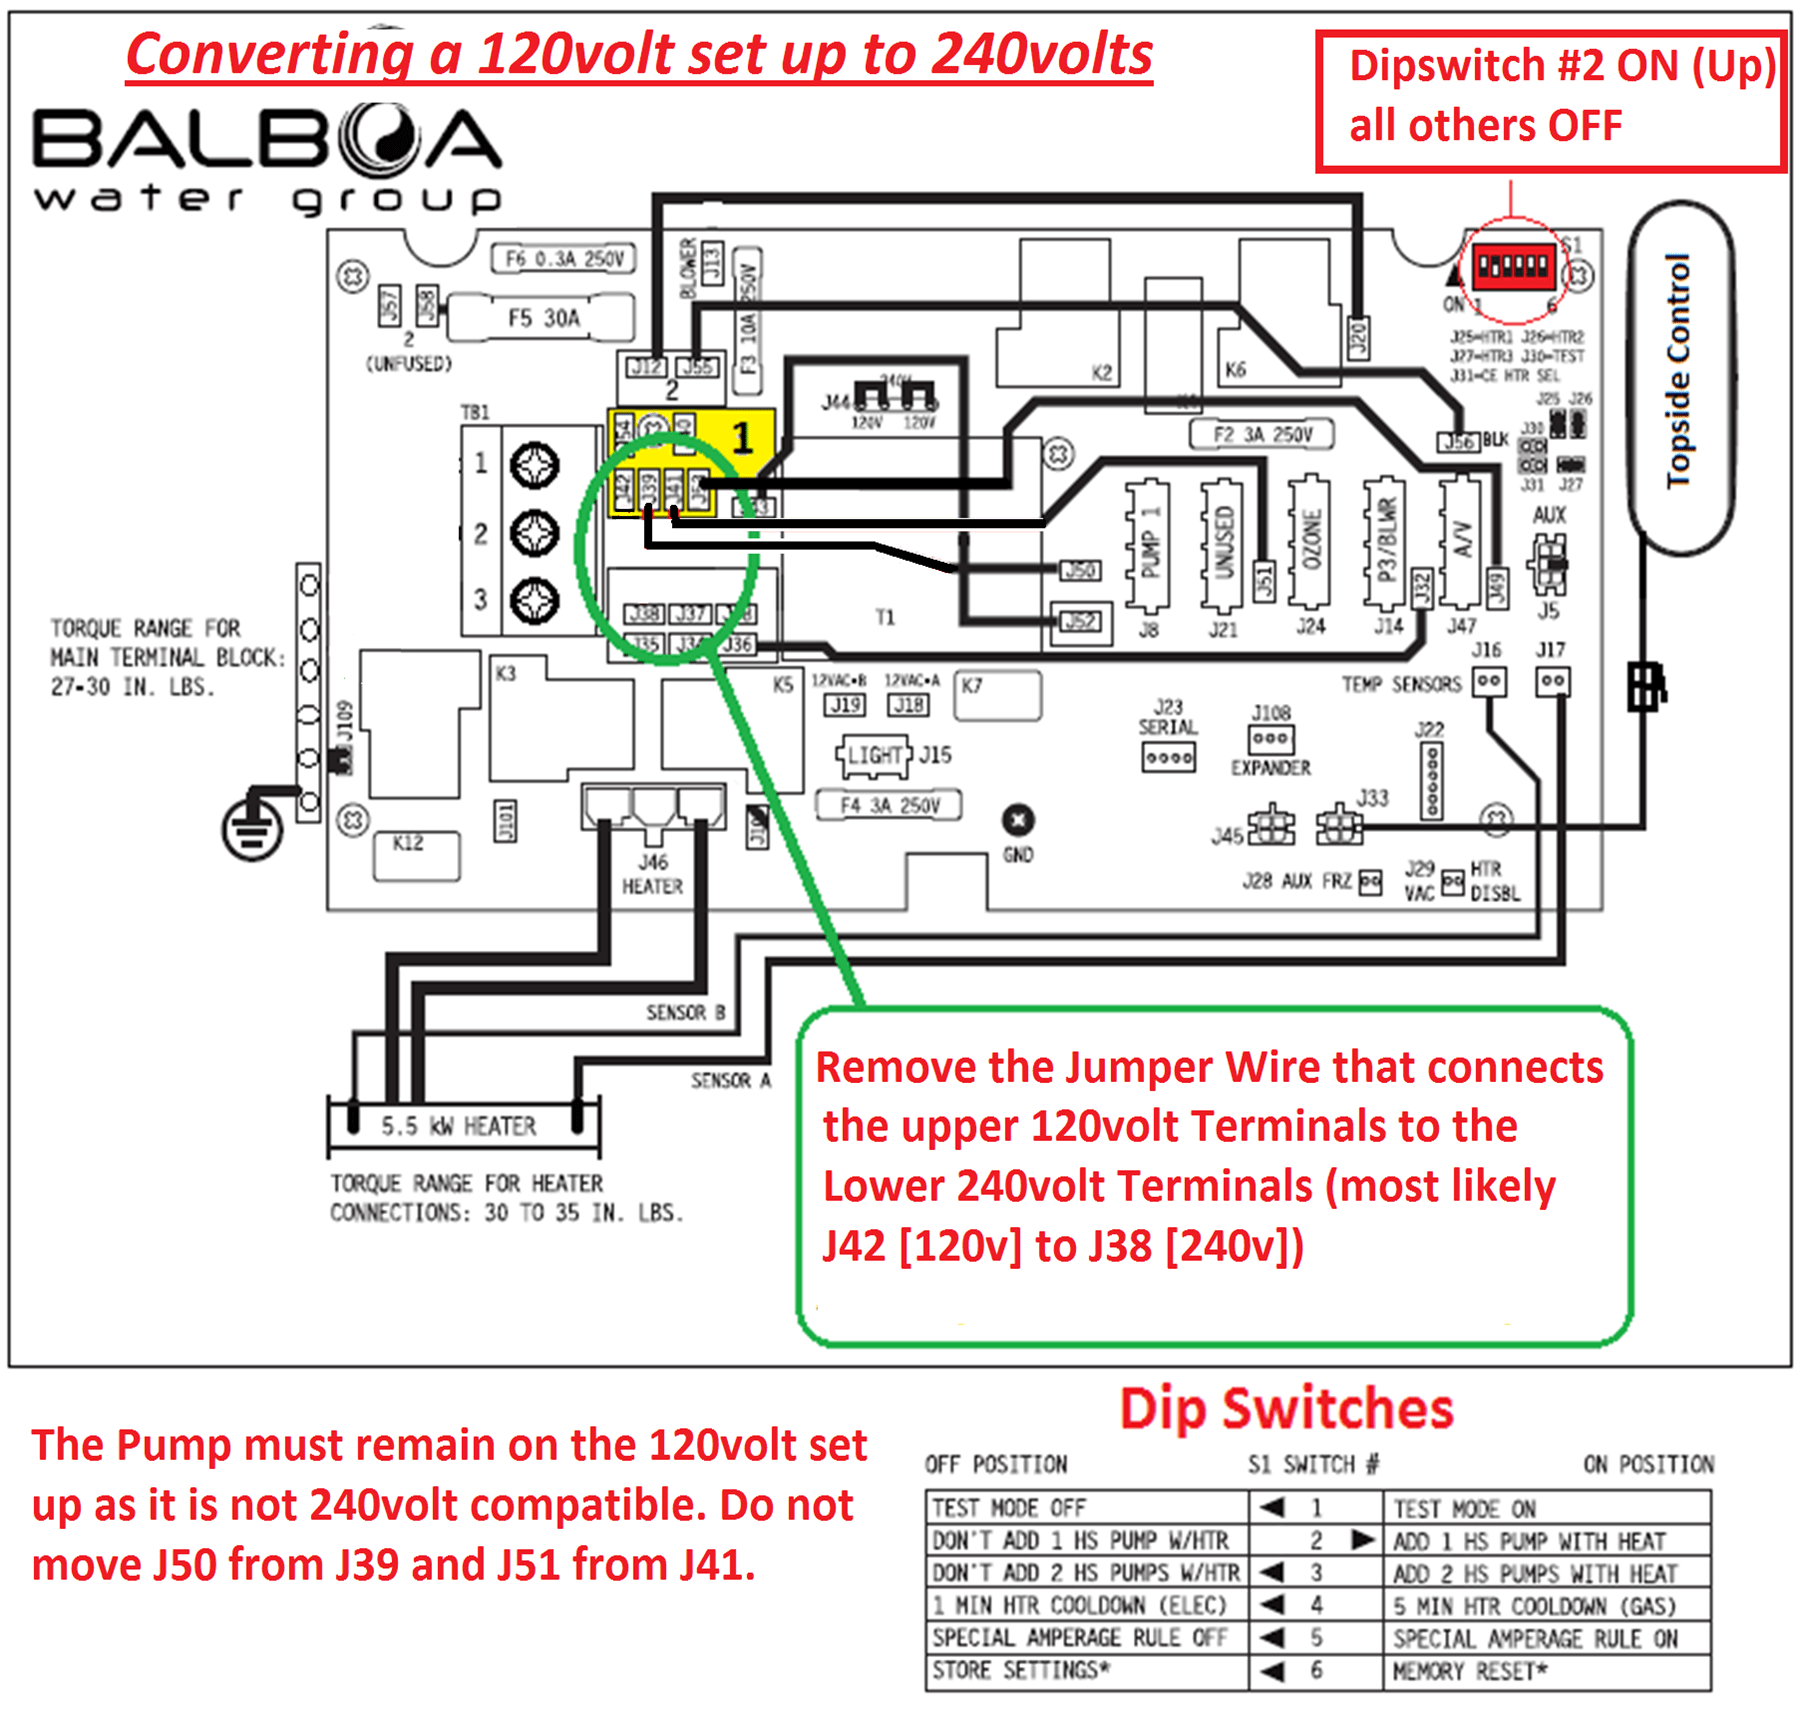 electrical installation converting a 120v balboa bp to 240v 120v hot tub wiring hot tub wiring 120v [ 1804 x 1728 Pixel ]